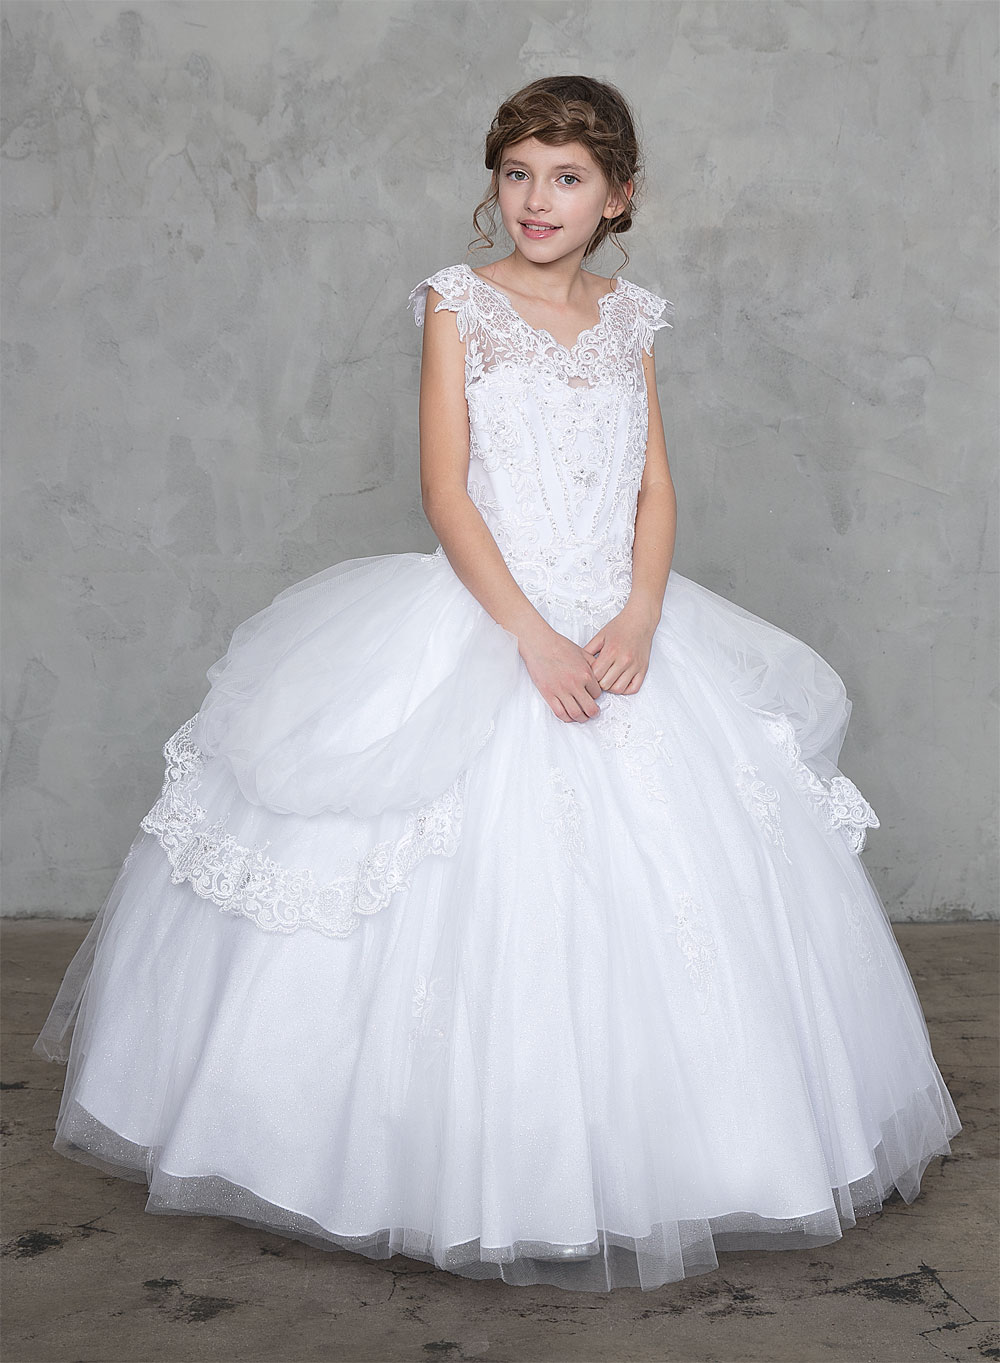 Crosses For Sale >> Buy First Holy Communion Gowns with Draped Tulle | Extra ...